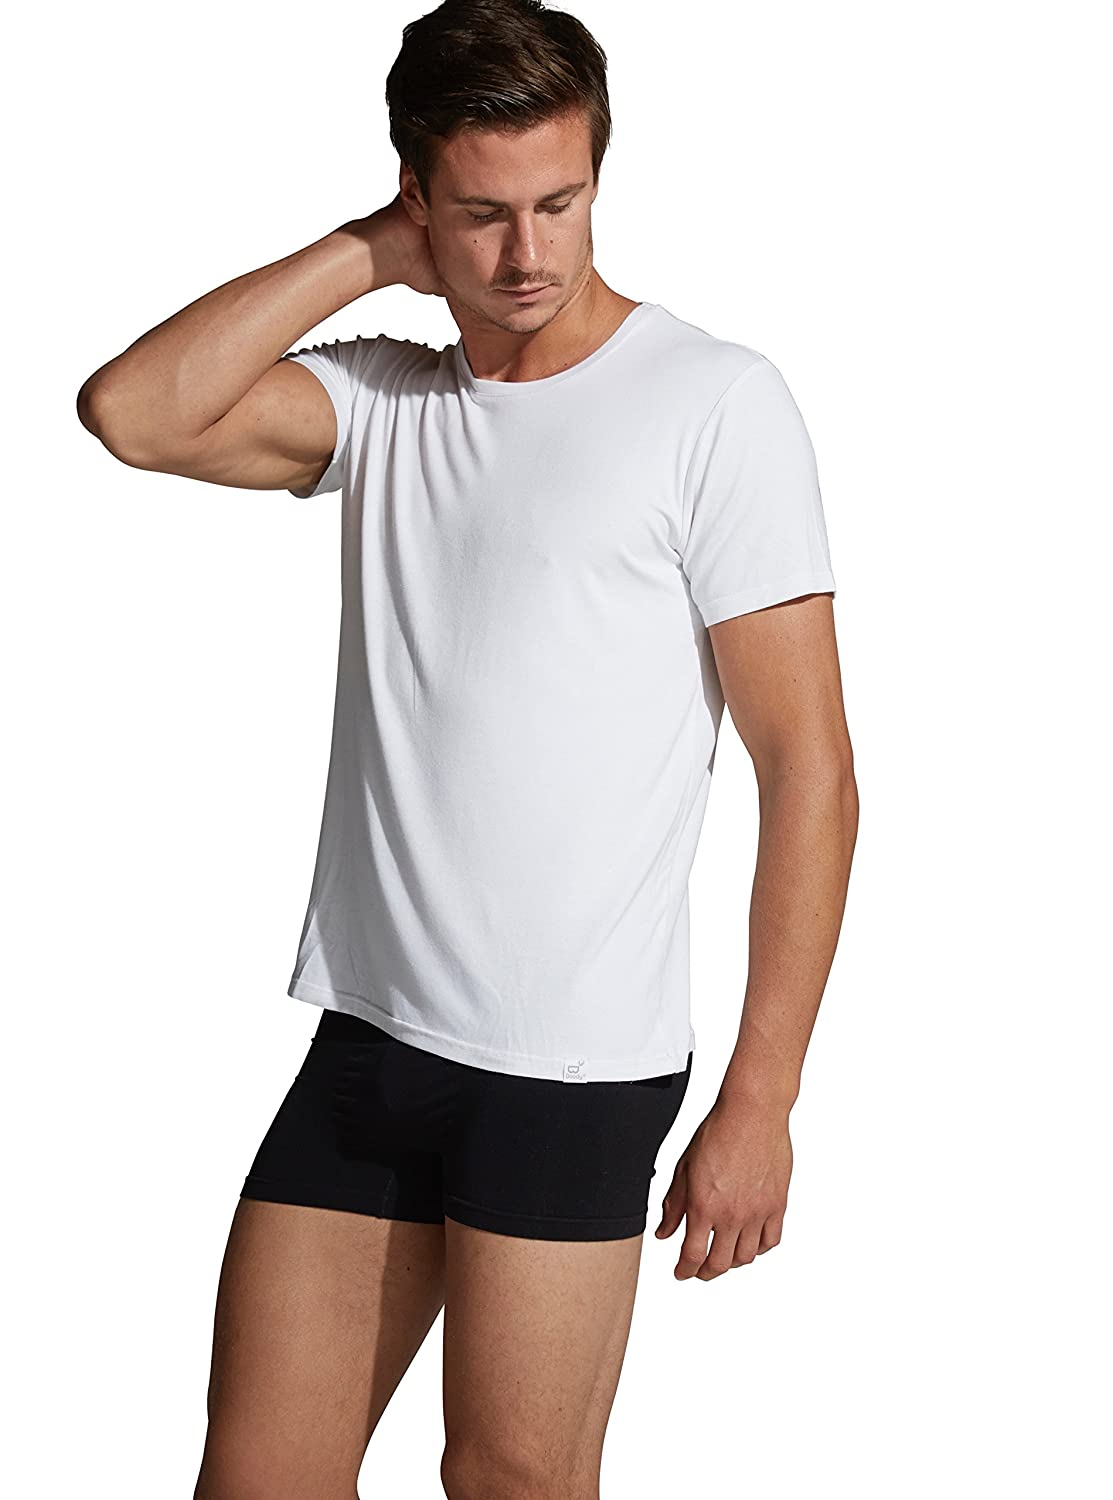 Boody Body EcoWear Mens Crew Neck T-Shirt - Cooling Athletic Short Sleeve Tee